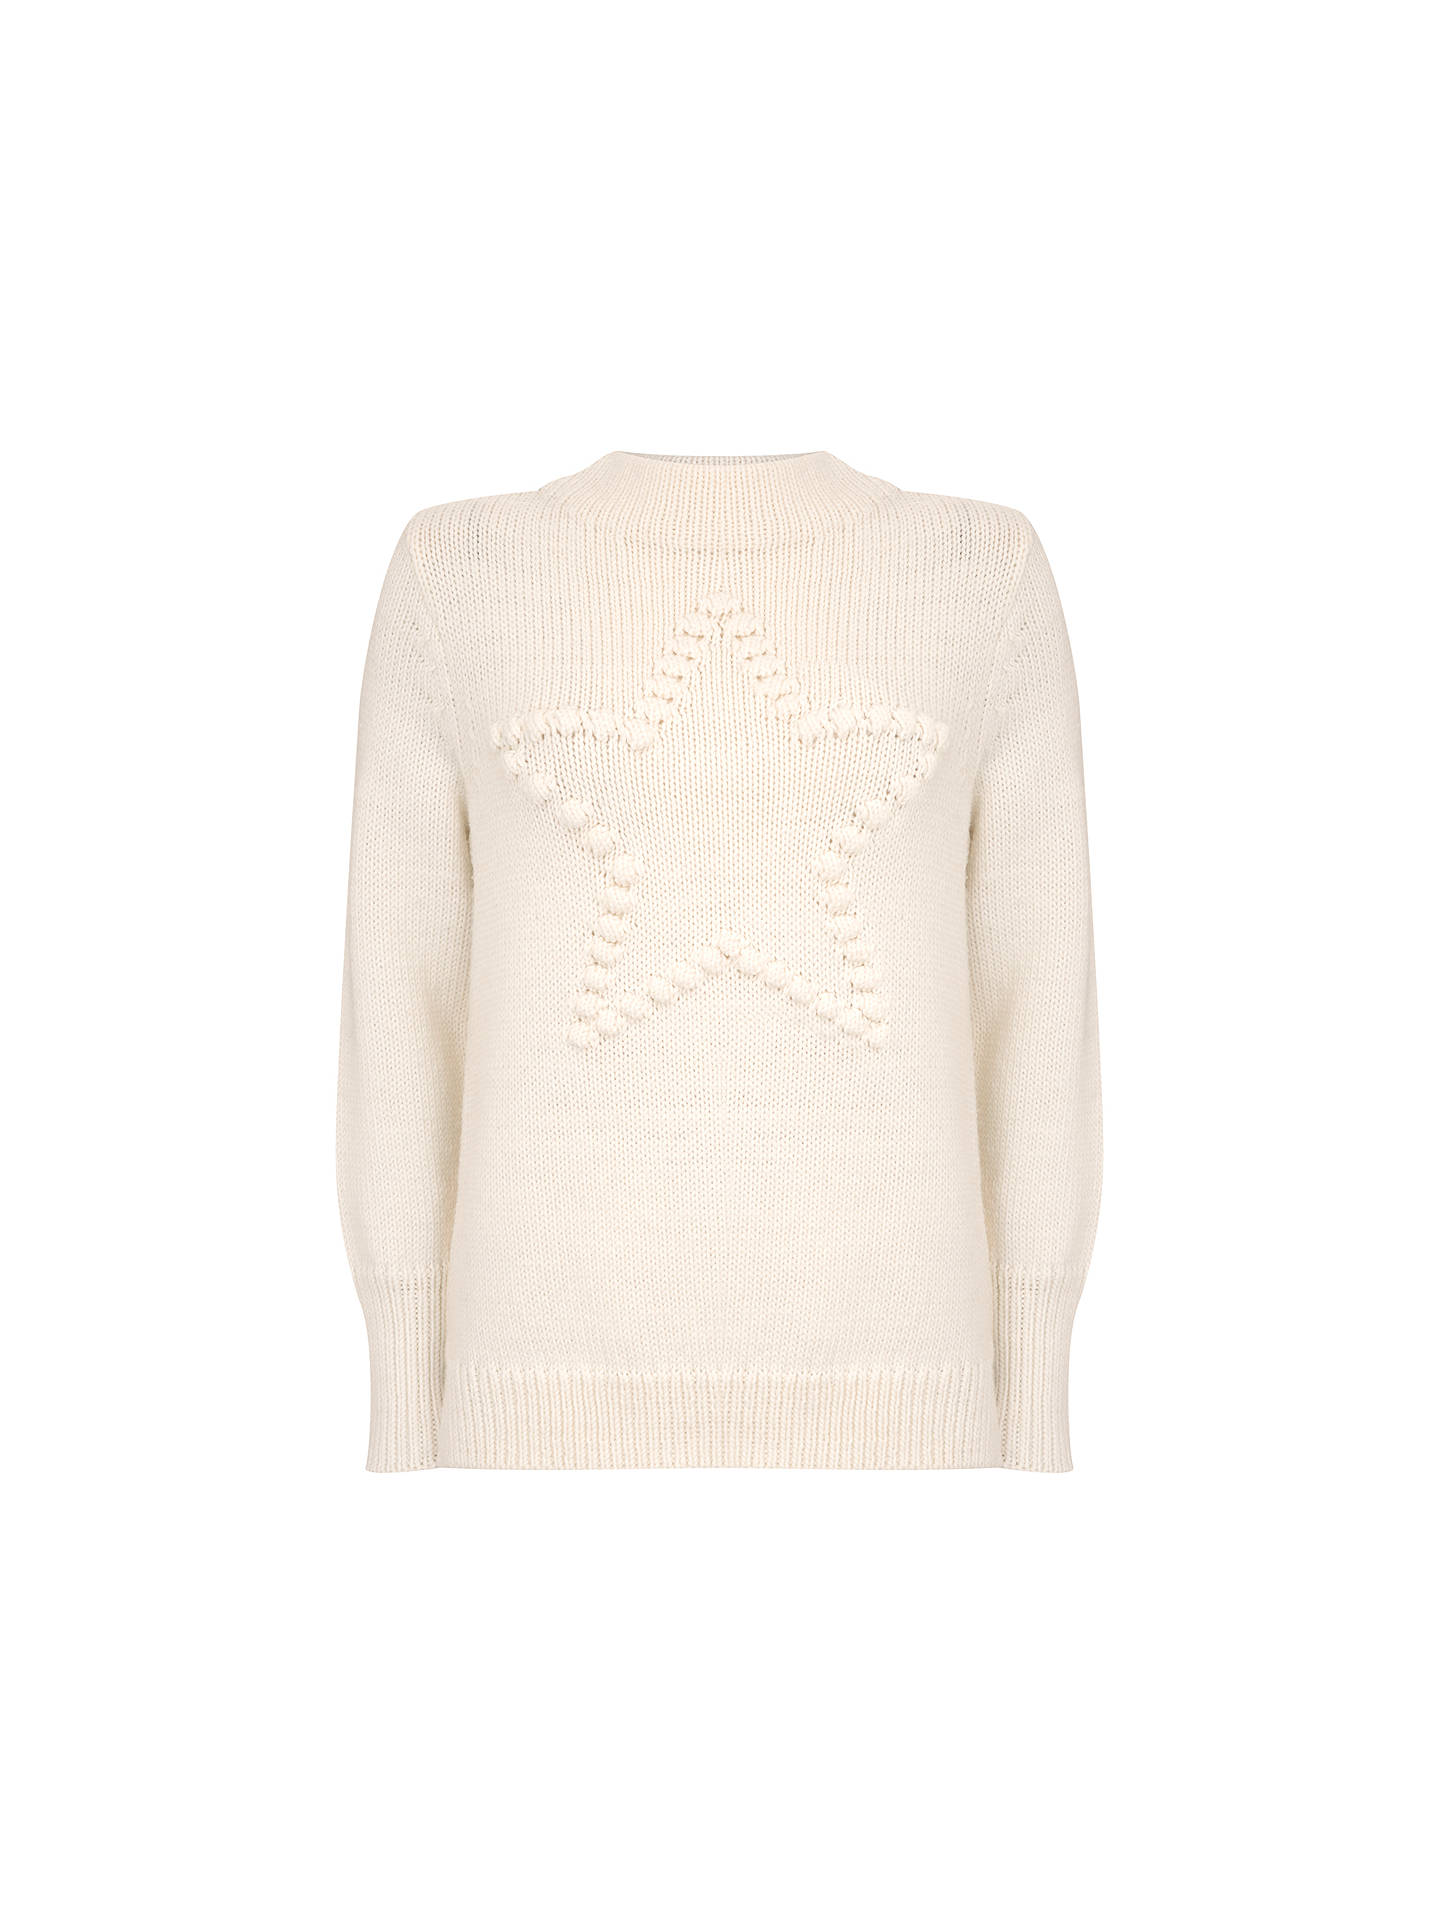 BuyMint Velvet Pom Pom Star Knit Jumper, Ivory, 12 Online at johnlewis.com